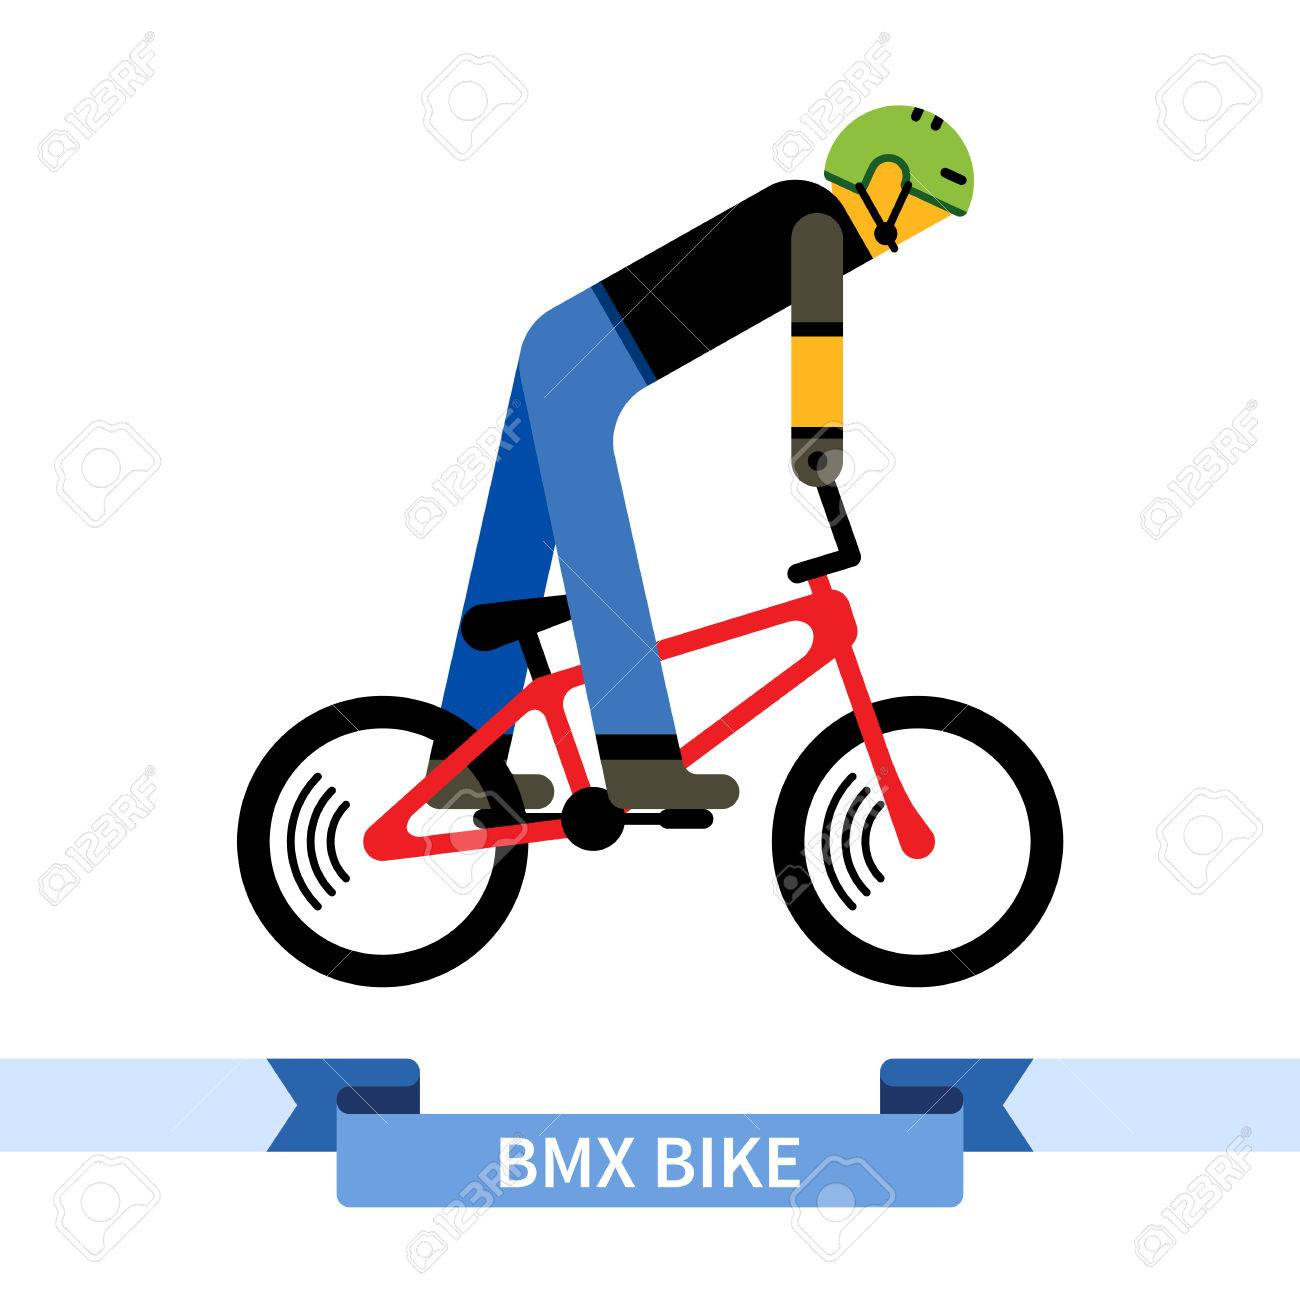 Bicyclist on bmx bike. Simple side view clipart drawing in flat...